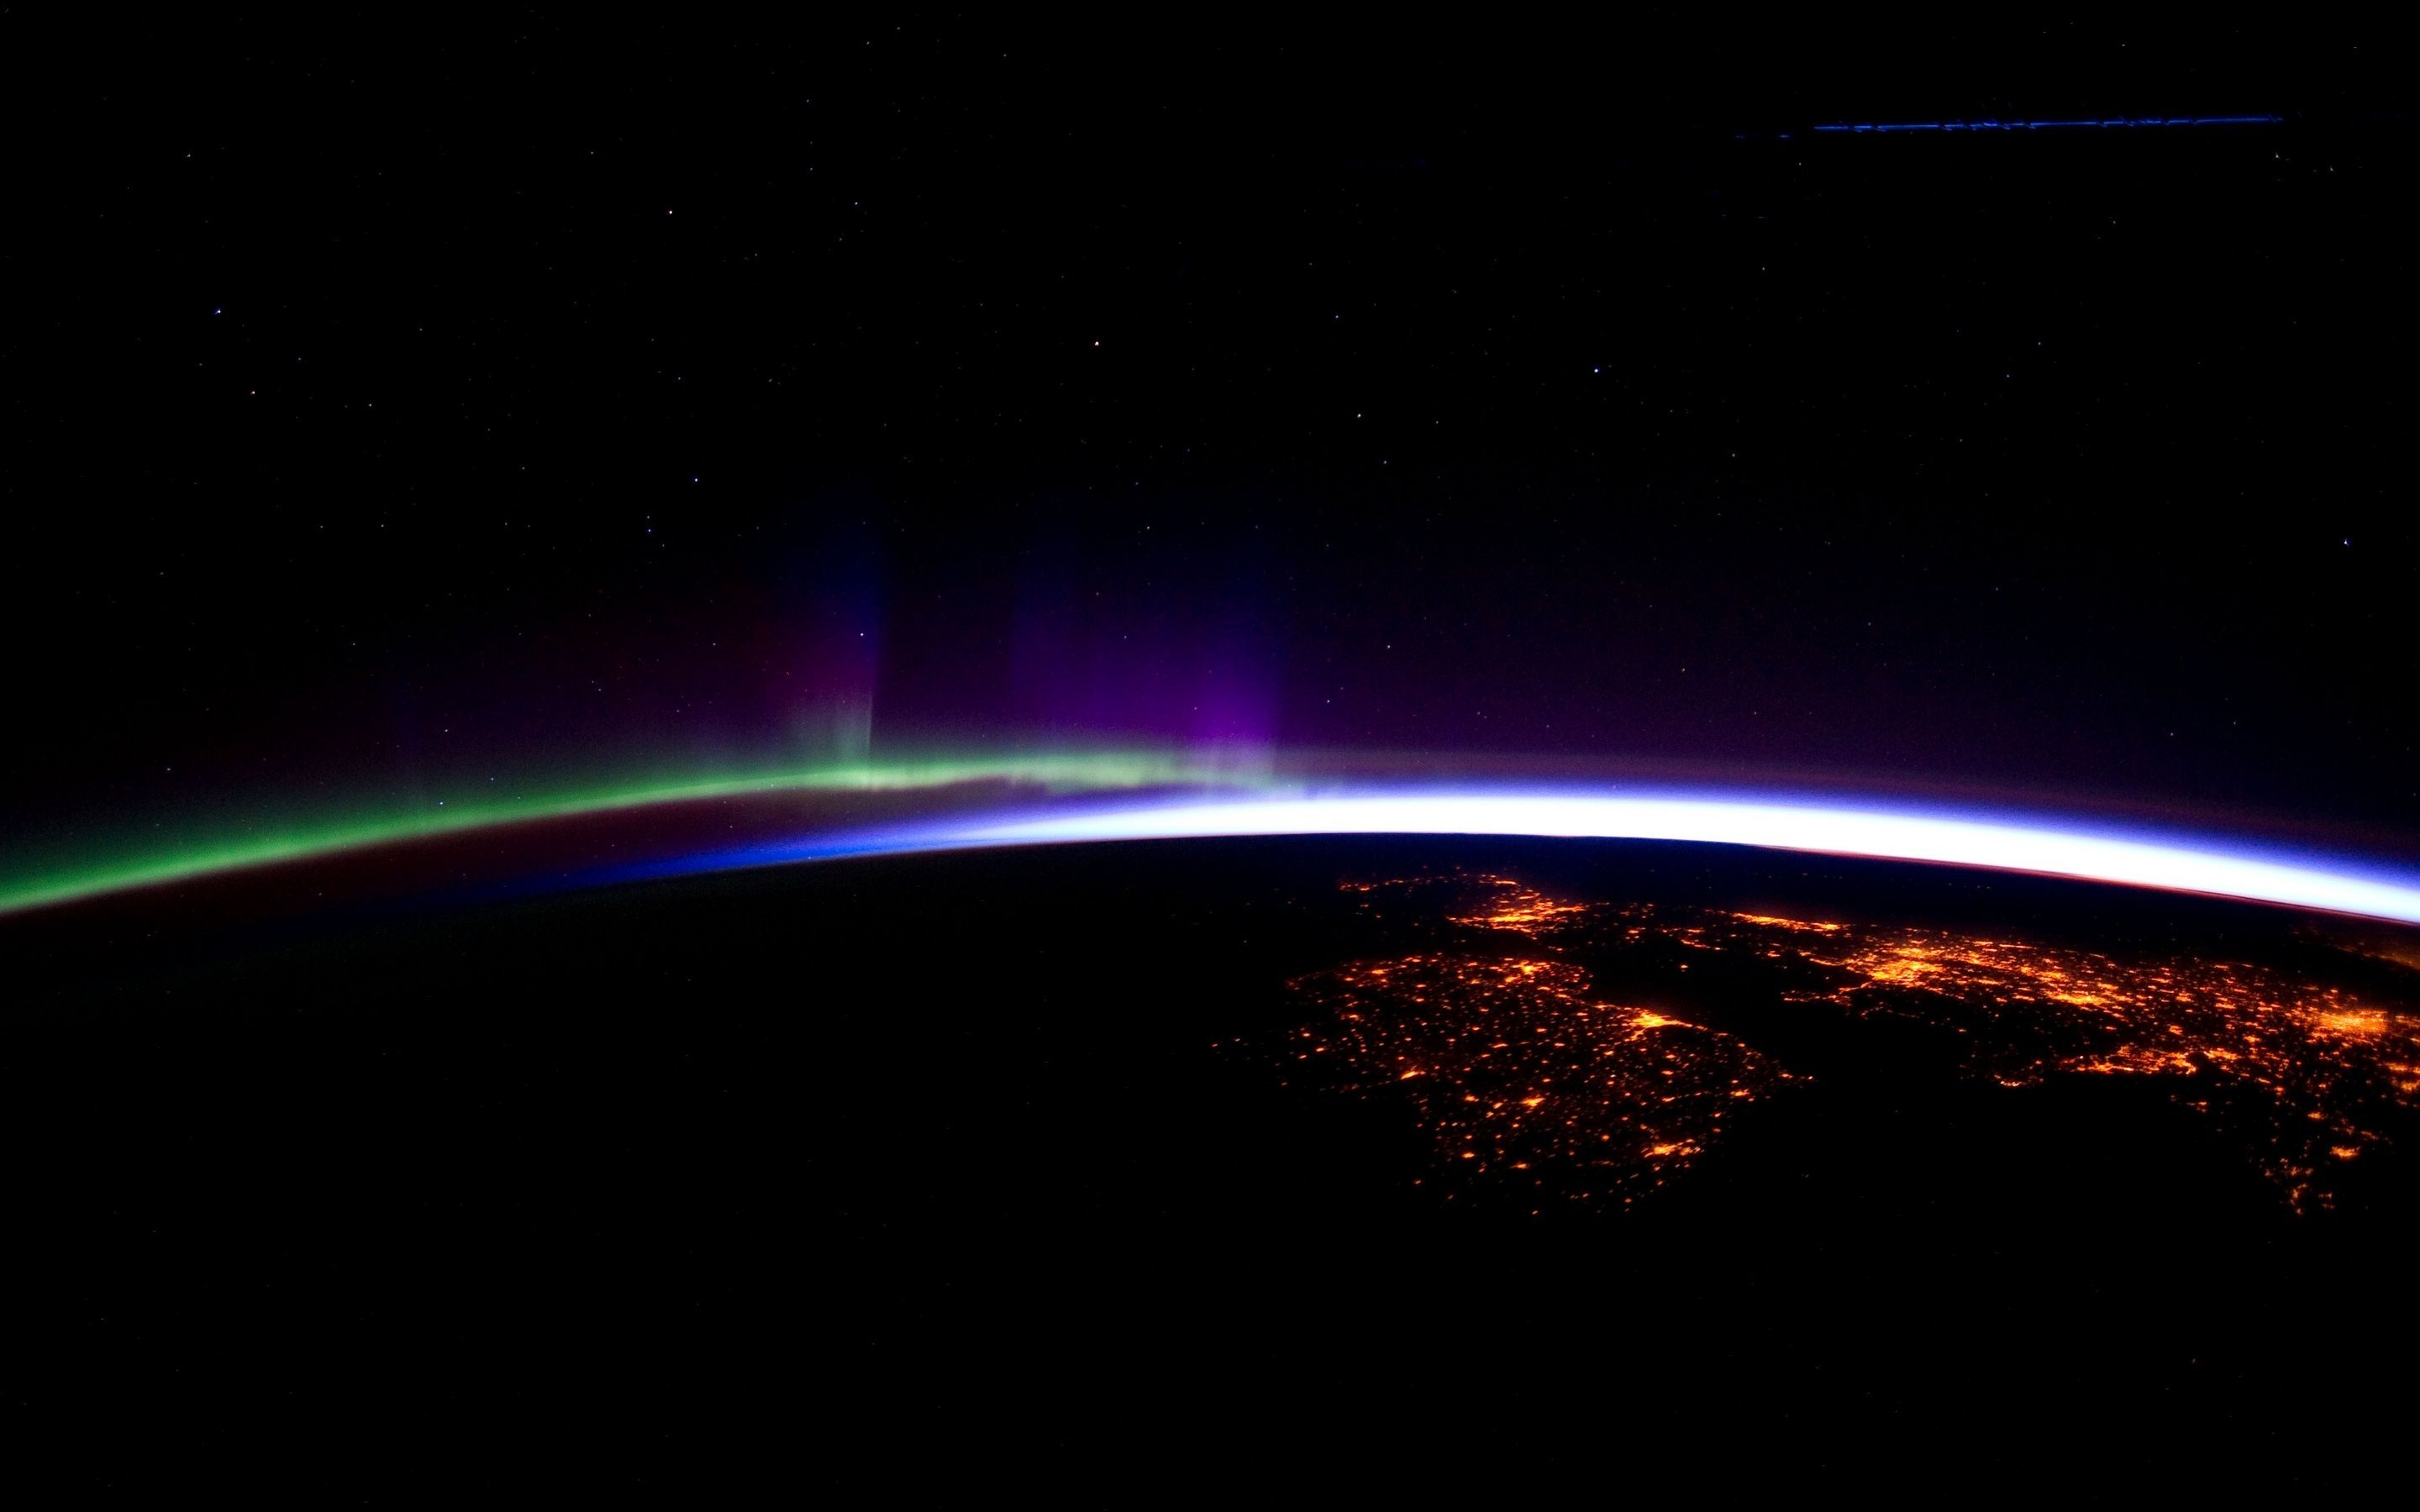 photography  space  earth  horizon  lights  aurorae hd